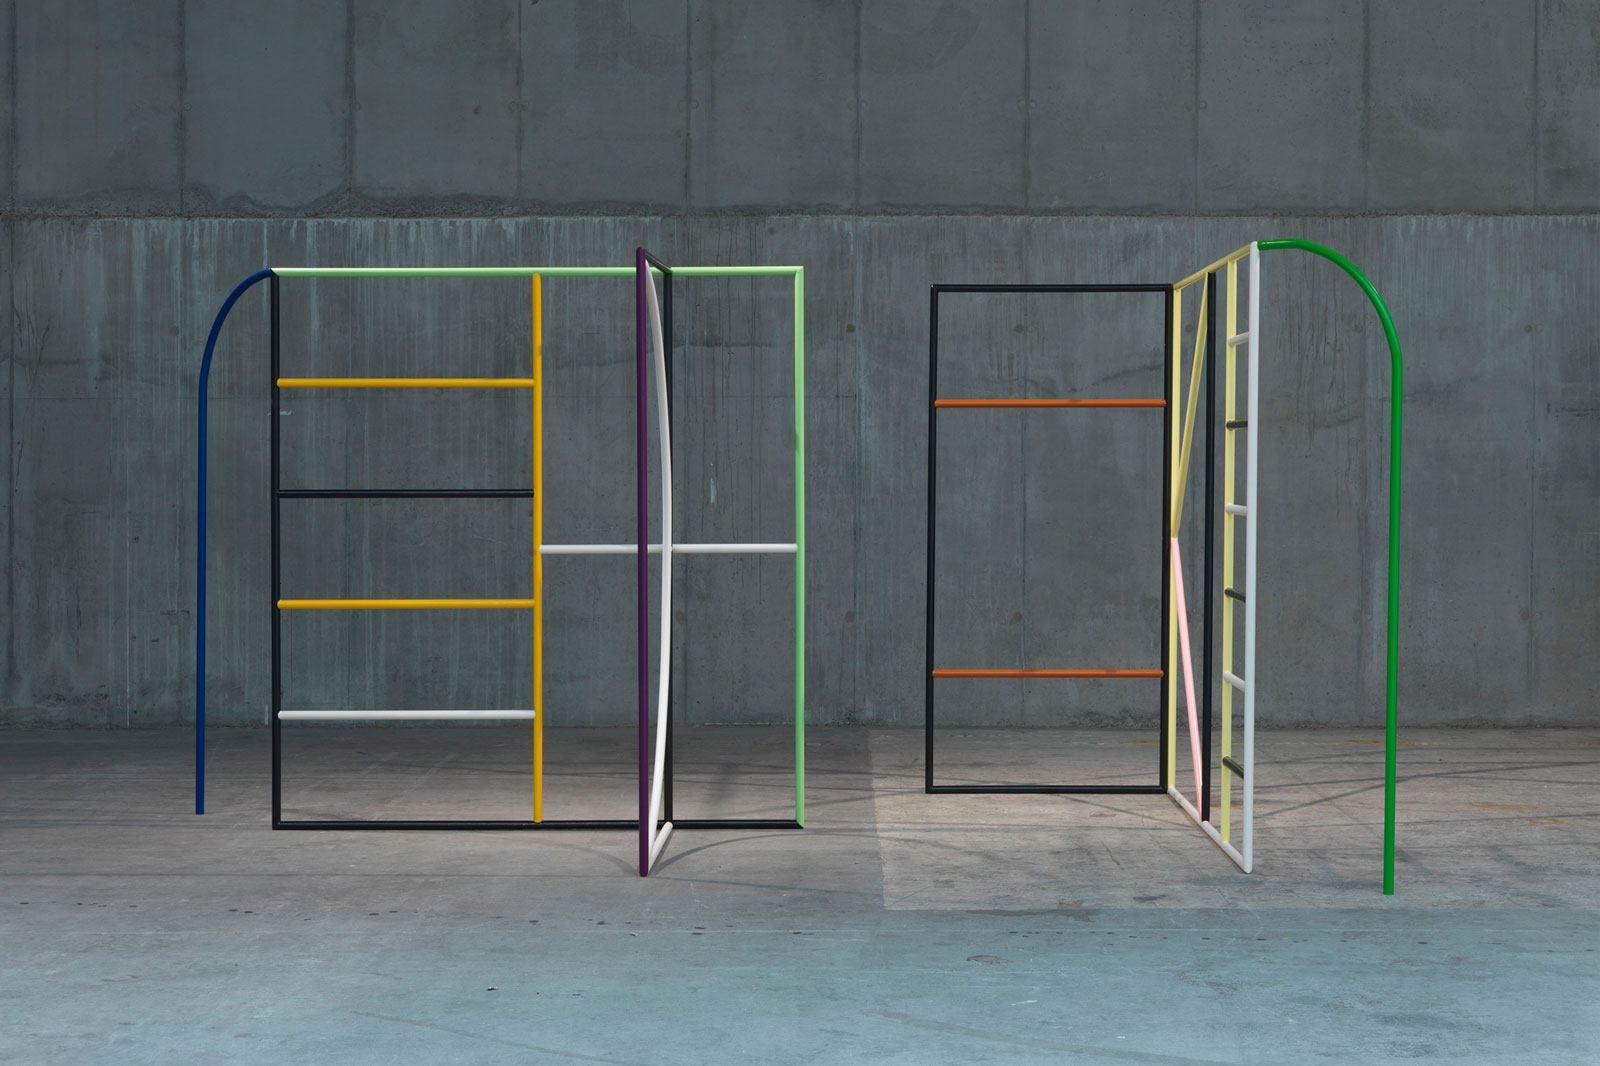 Untitled (Monday &amp; Tuesday), 2013 <br/>steel, lacquer<br/>220 x 250 x 150 cm each